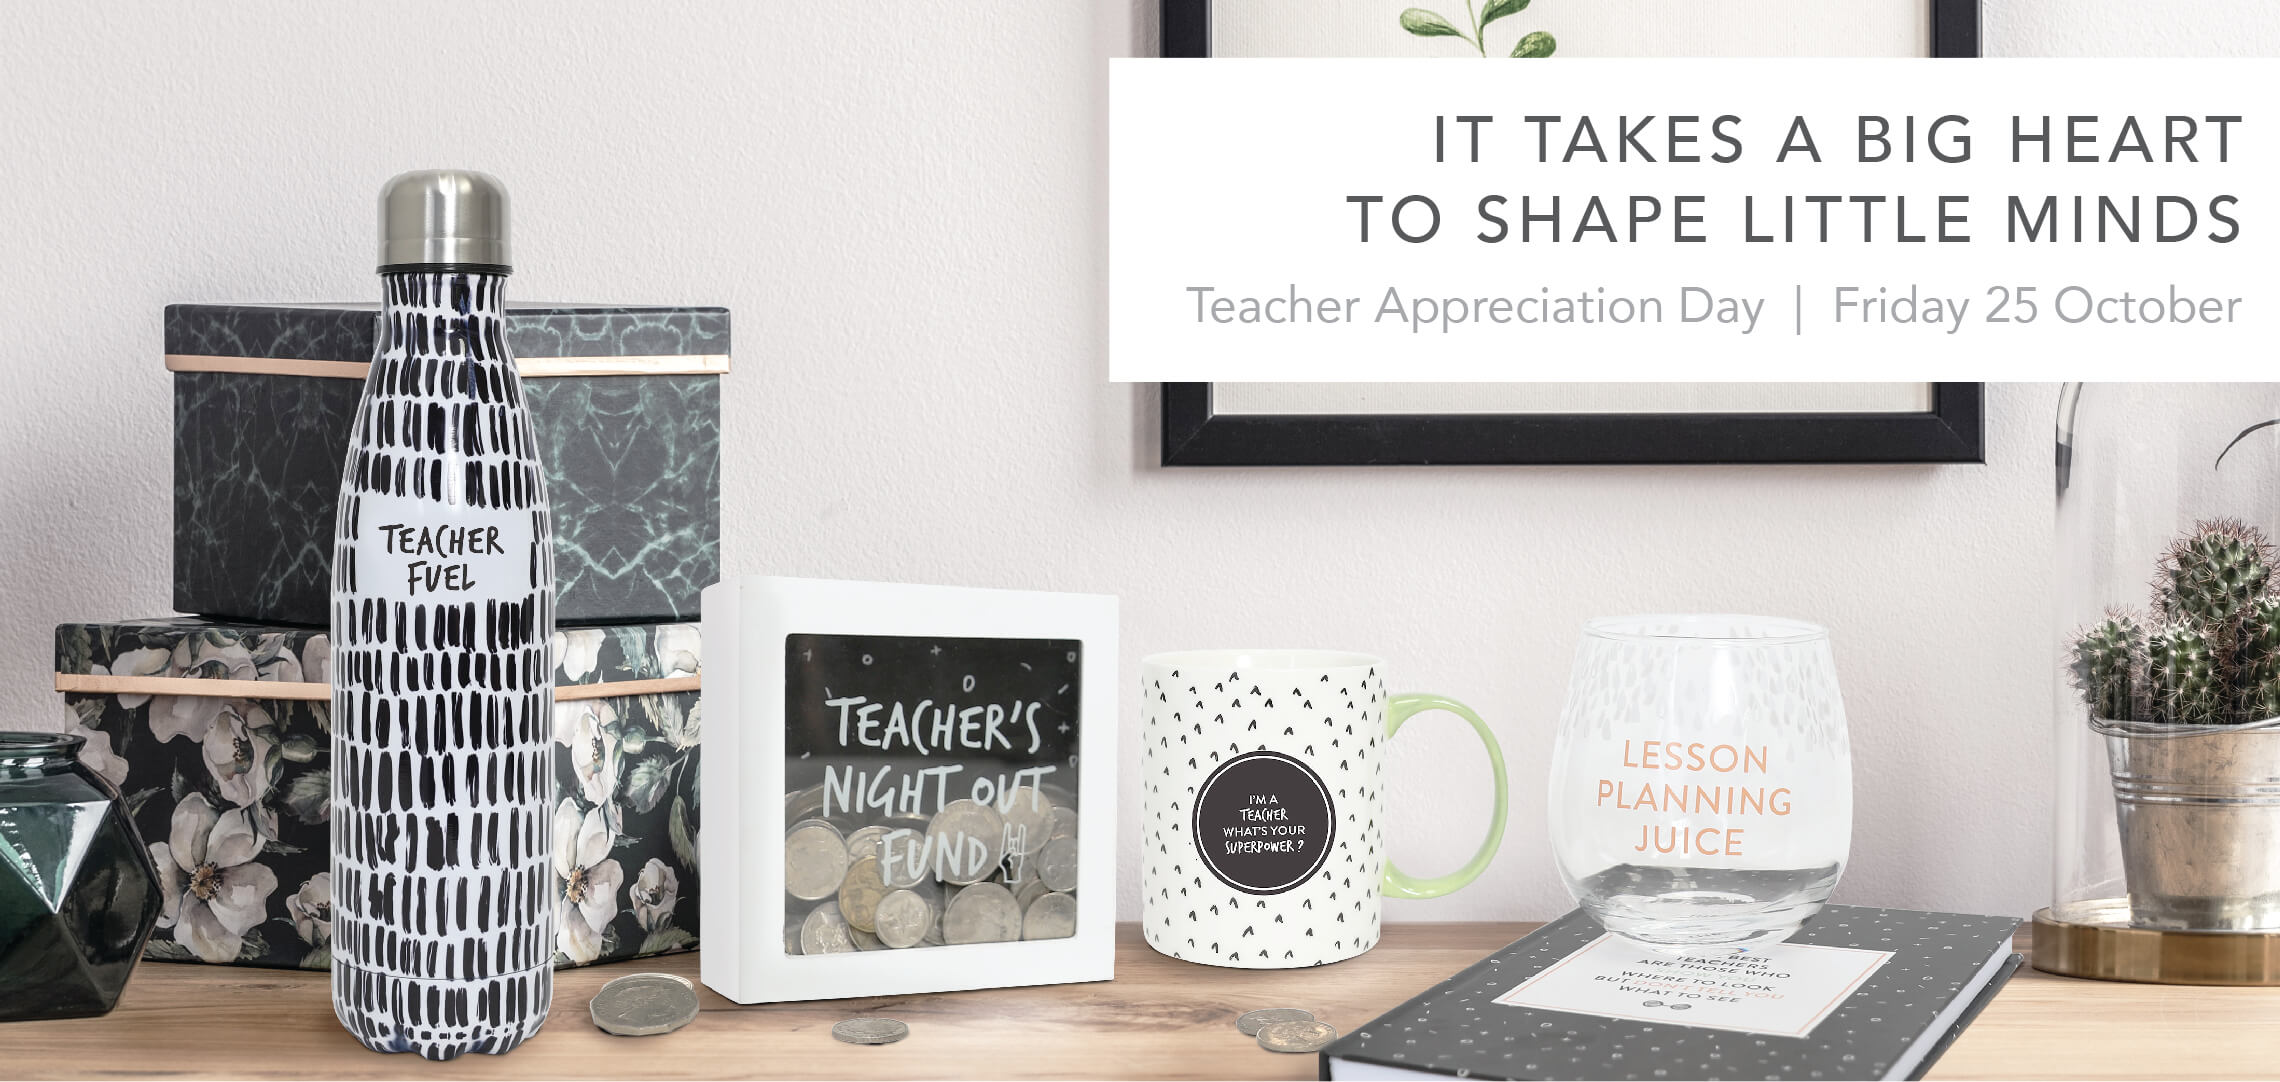 The limited edition Teacher collection packs a punch with fun sayings on products perfect for teachers.